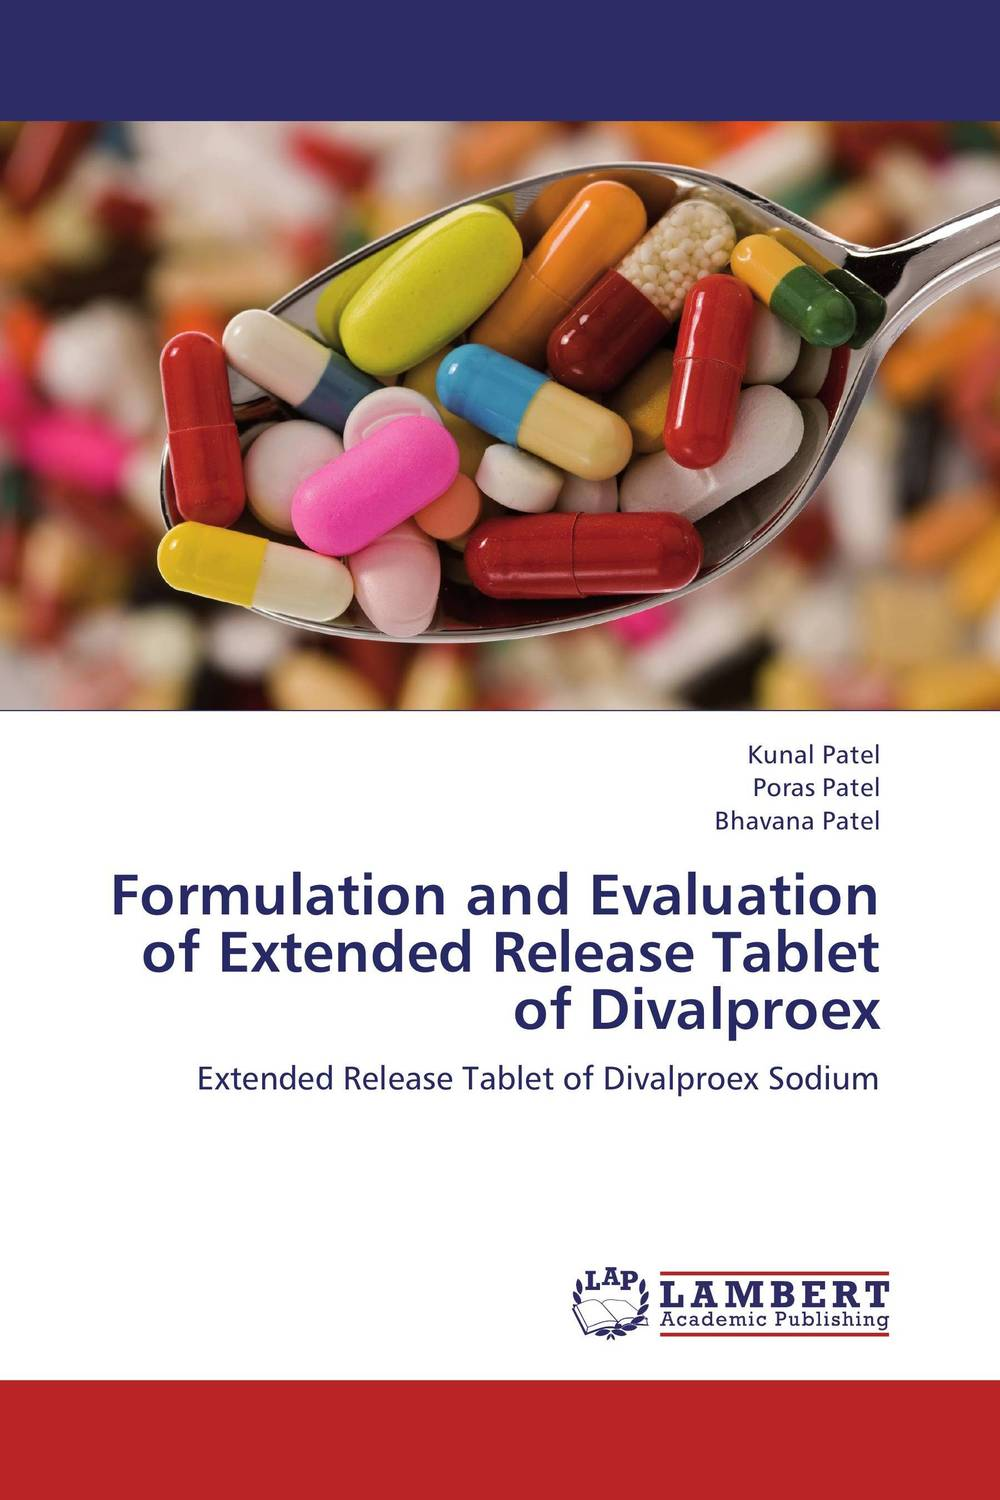 Formulation and Evaluation of Extended Release Tablet of Divalproex amita yadav kamal singh rathore and geeta m patel formulation evaluation and optimization of mouth dissolving tablets